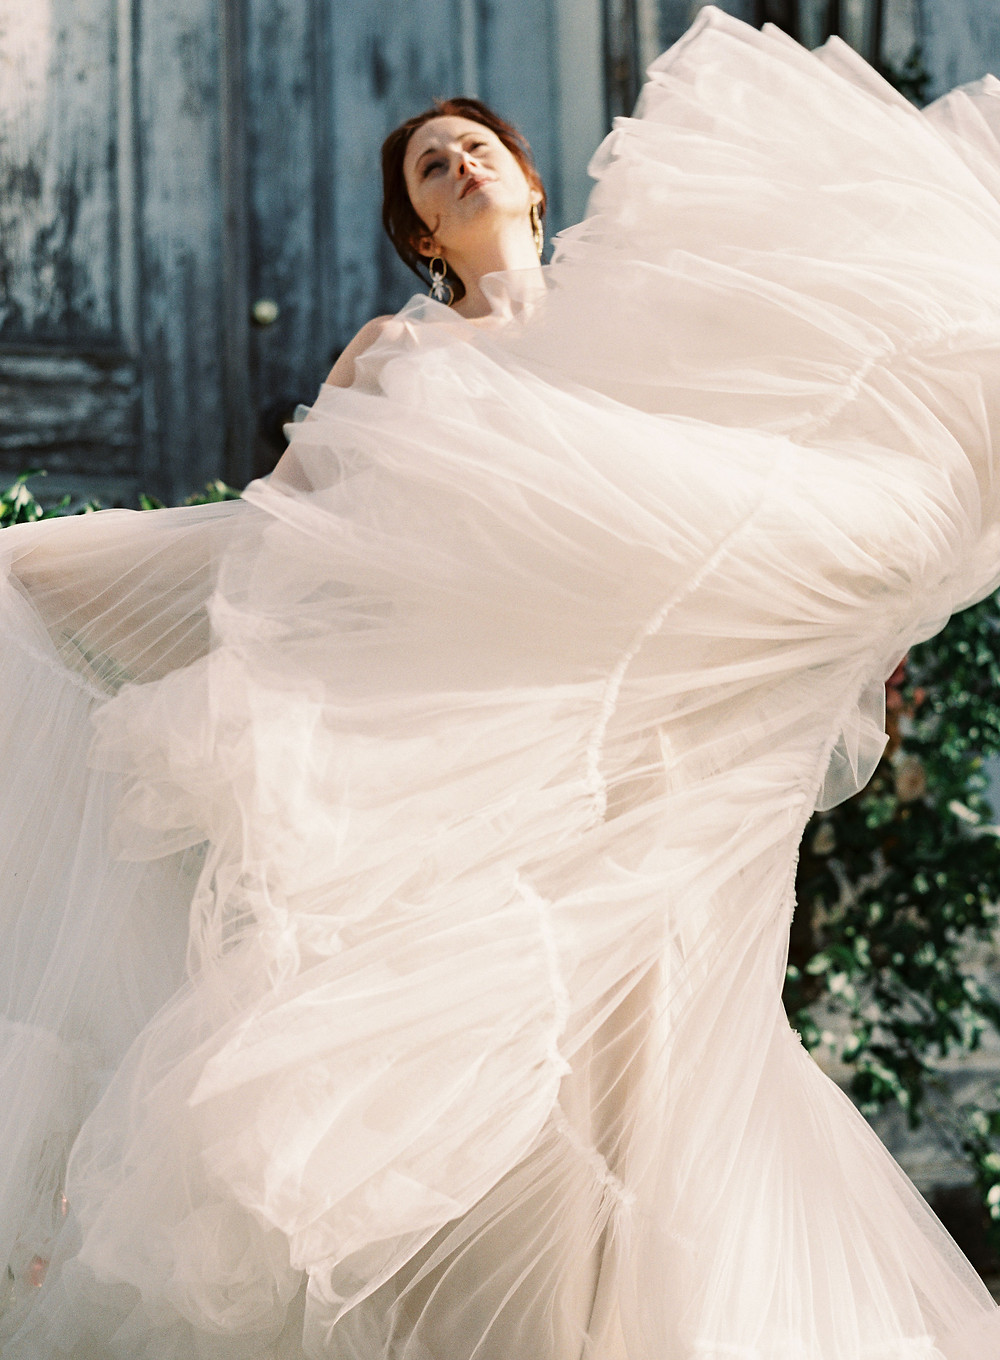 leaf + petal, New Orleans, Marigny opera house, Bridgerton wedding, unbridaled wedding dress,